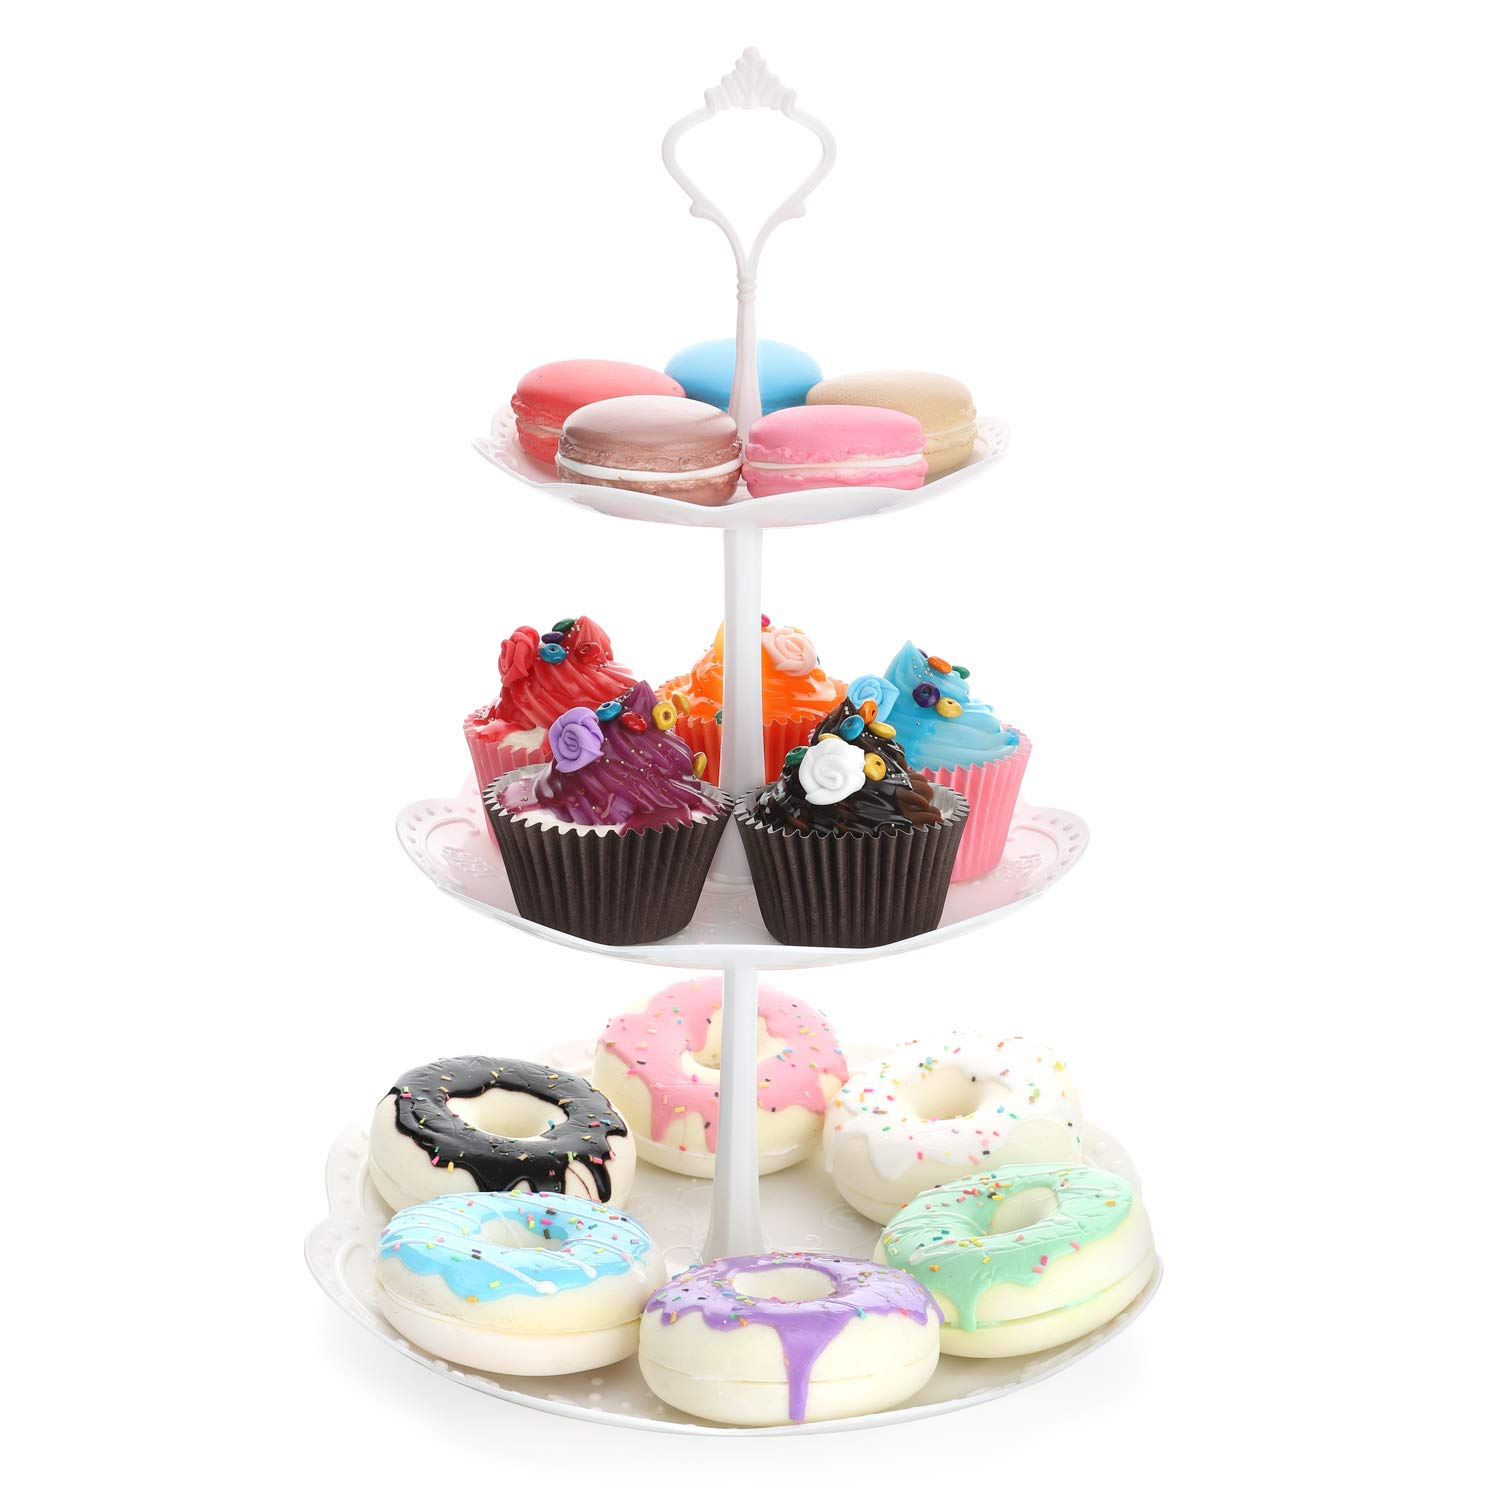 Fruit Desserts Cupcake Candy Buffet Plastic Round Plate Stand Serving Platter Display Tree Tower Stand for Wedding Home Birthday Festival Party White 3 Tier Round Nuovoware 3-Tier Cake Stand